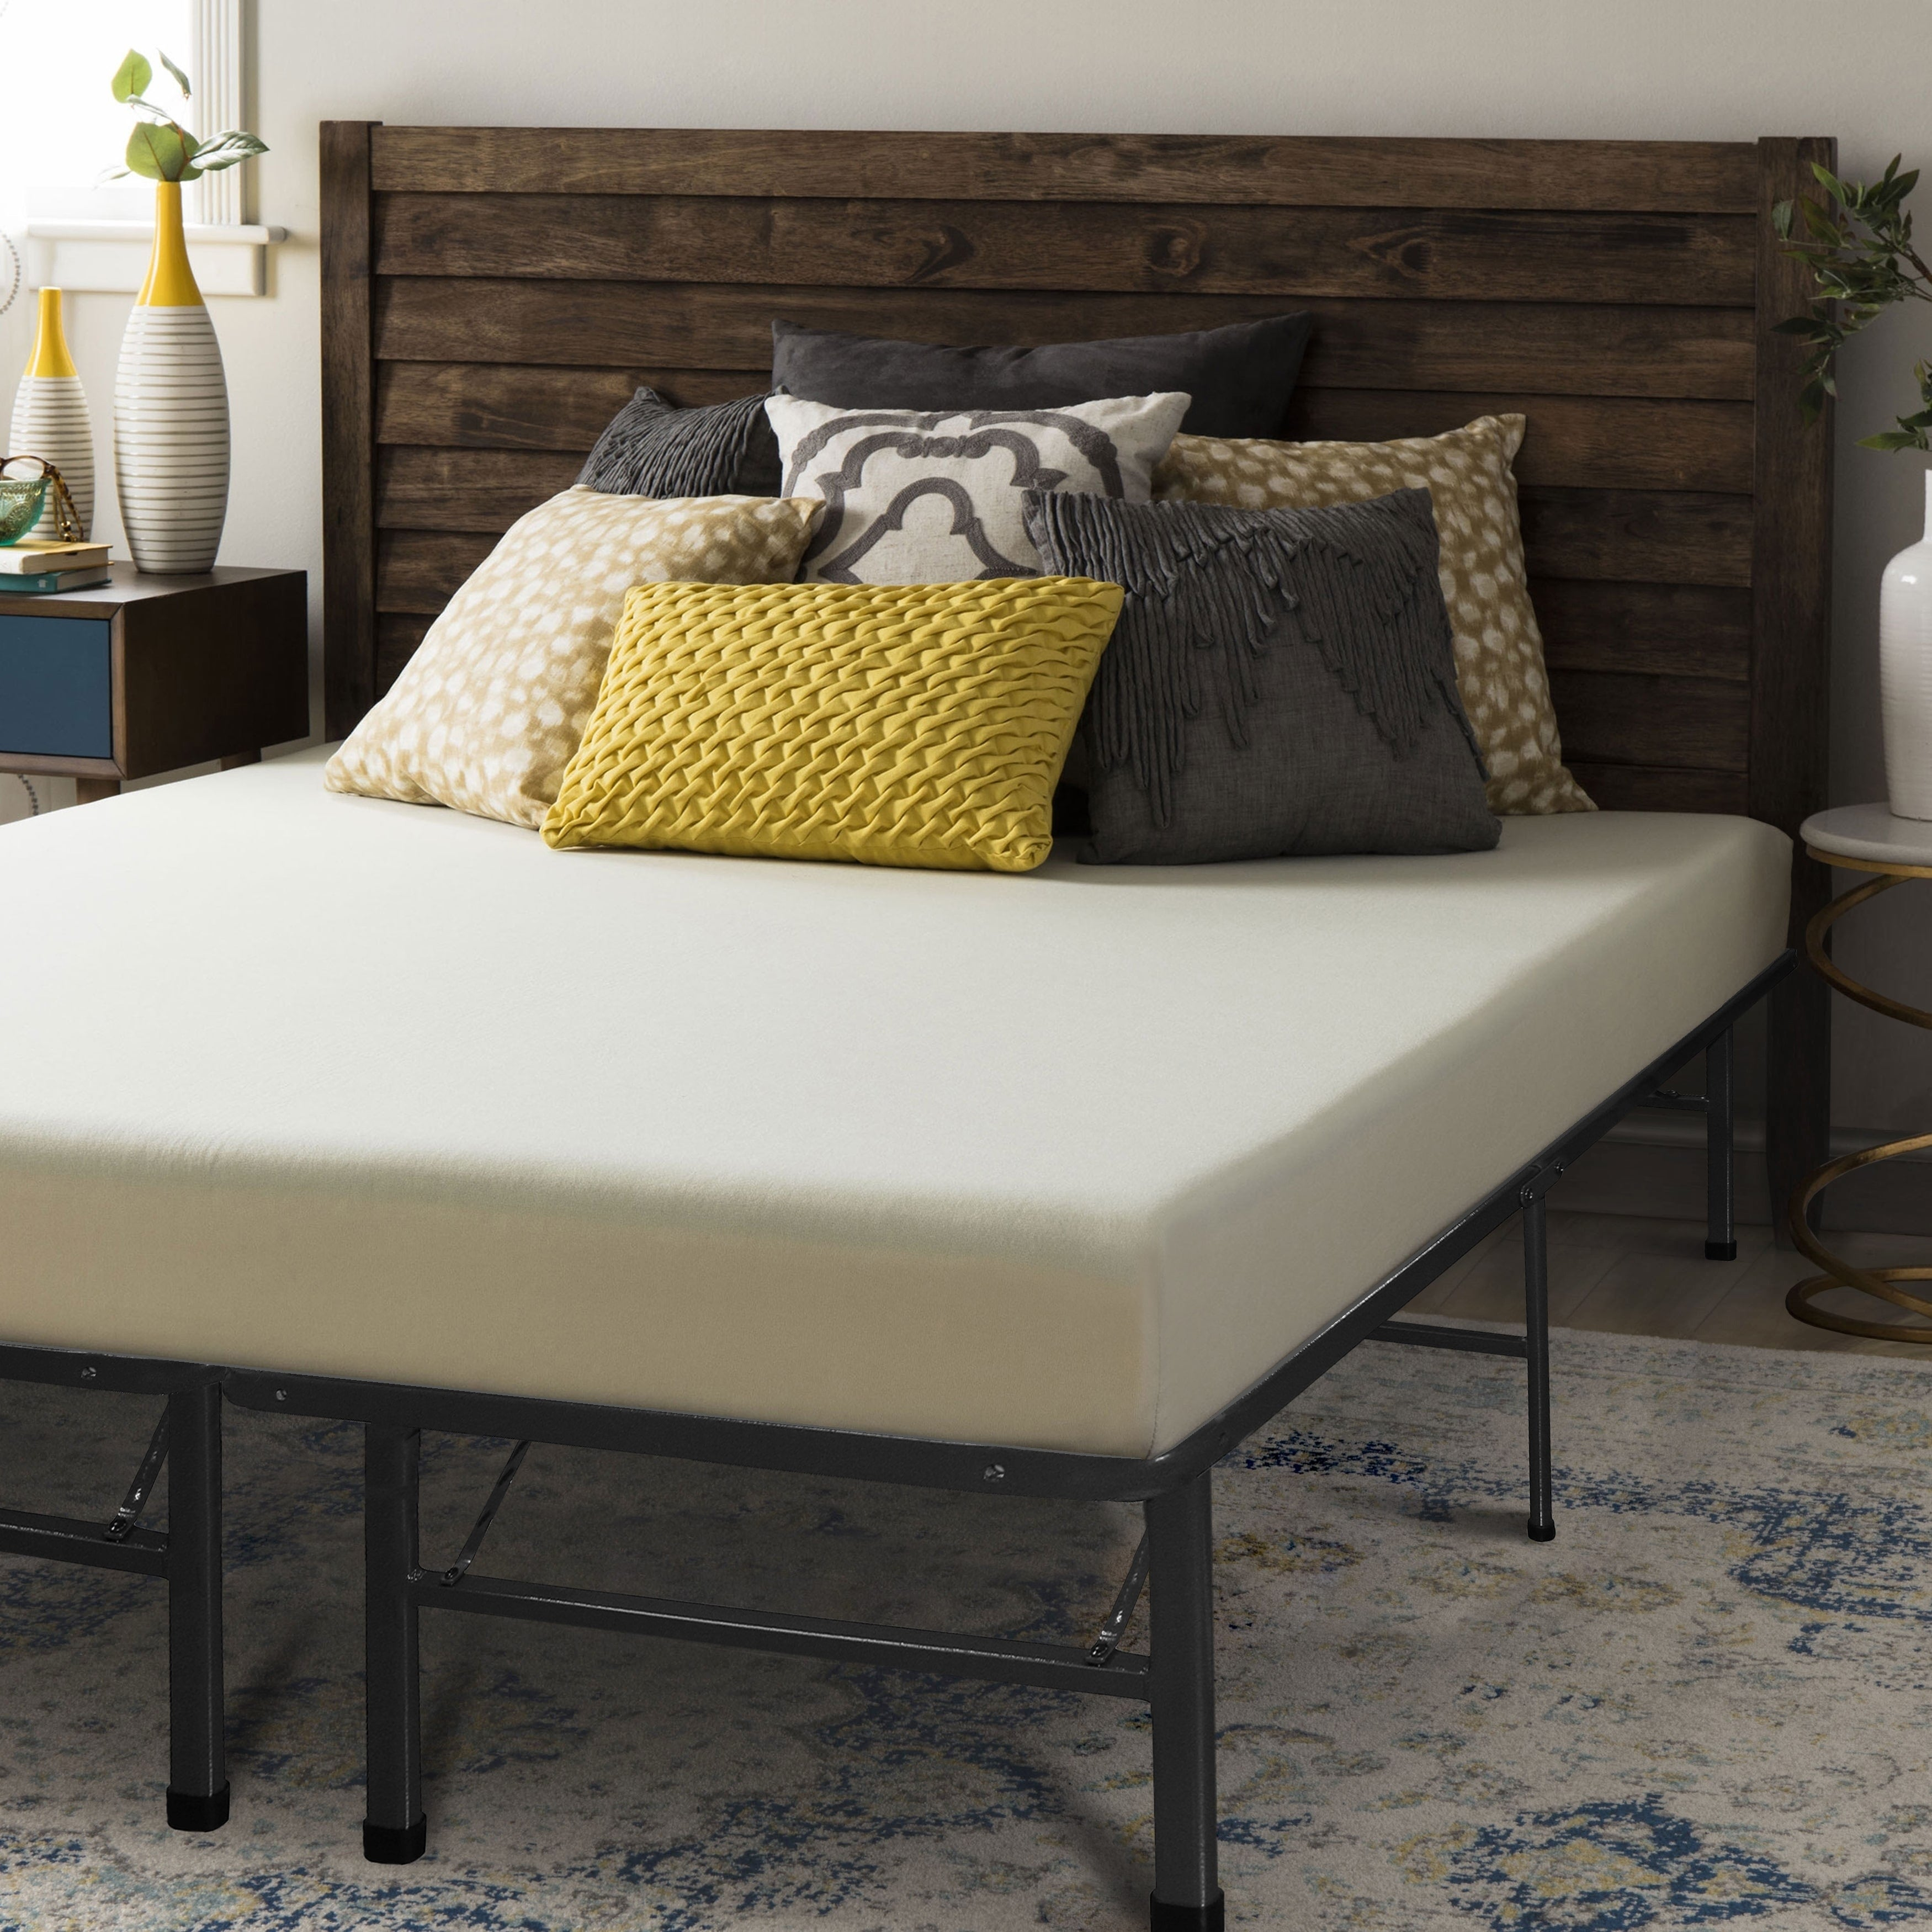 Crown Comfort 6-inch Full-size Bed Frame and Memory Foam ...